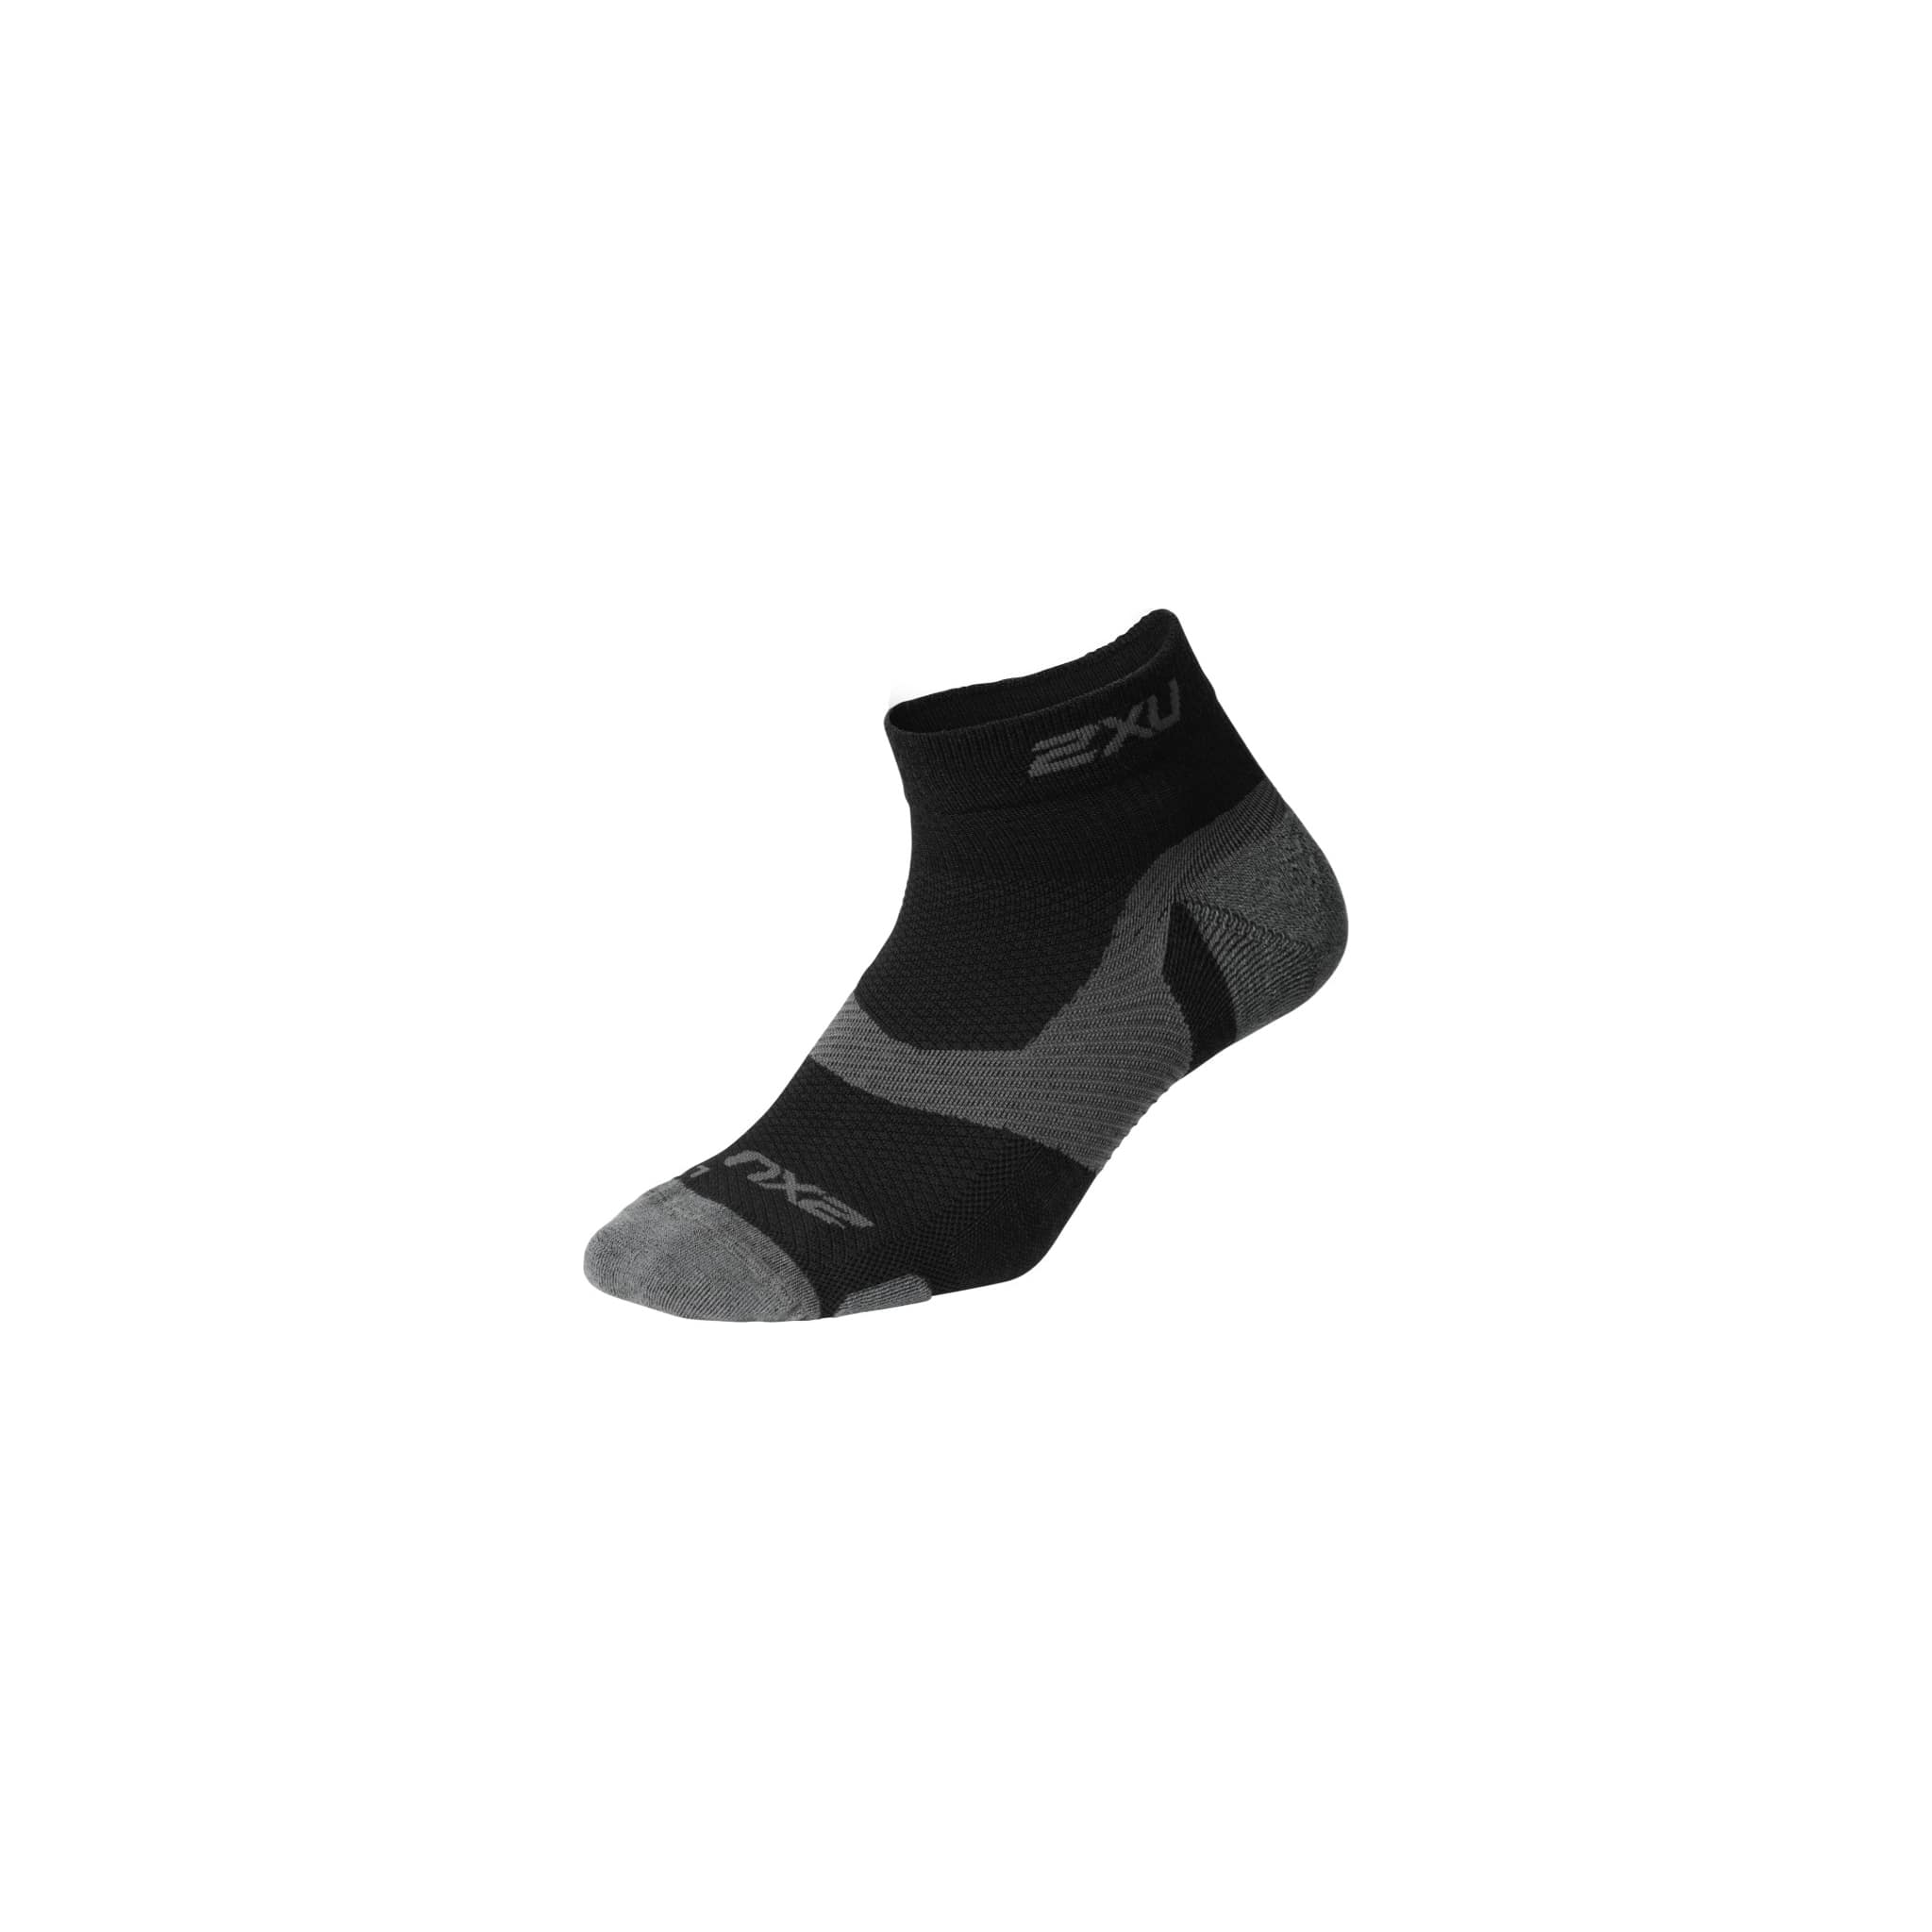 Vectr Merino Light 1/4 Crew Sock